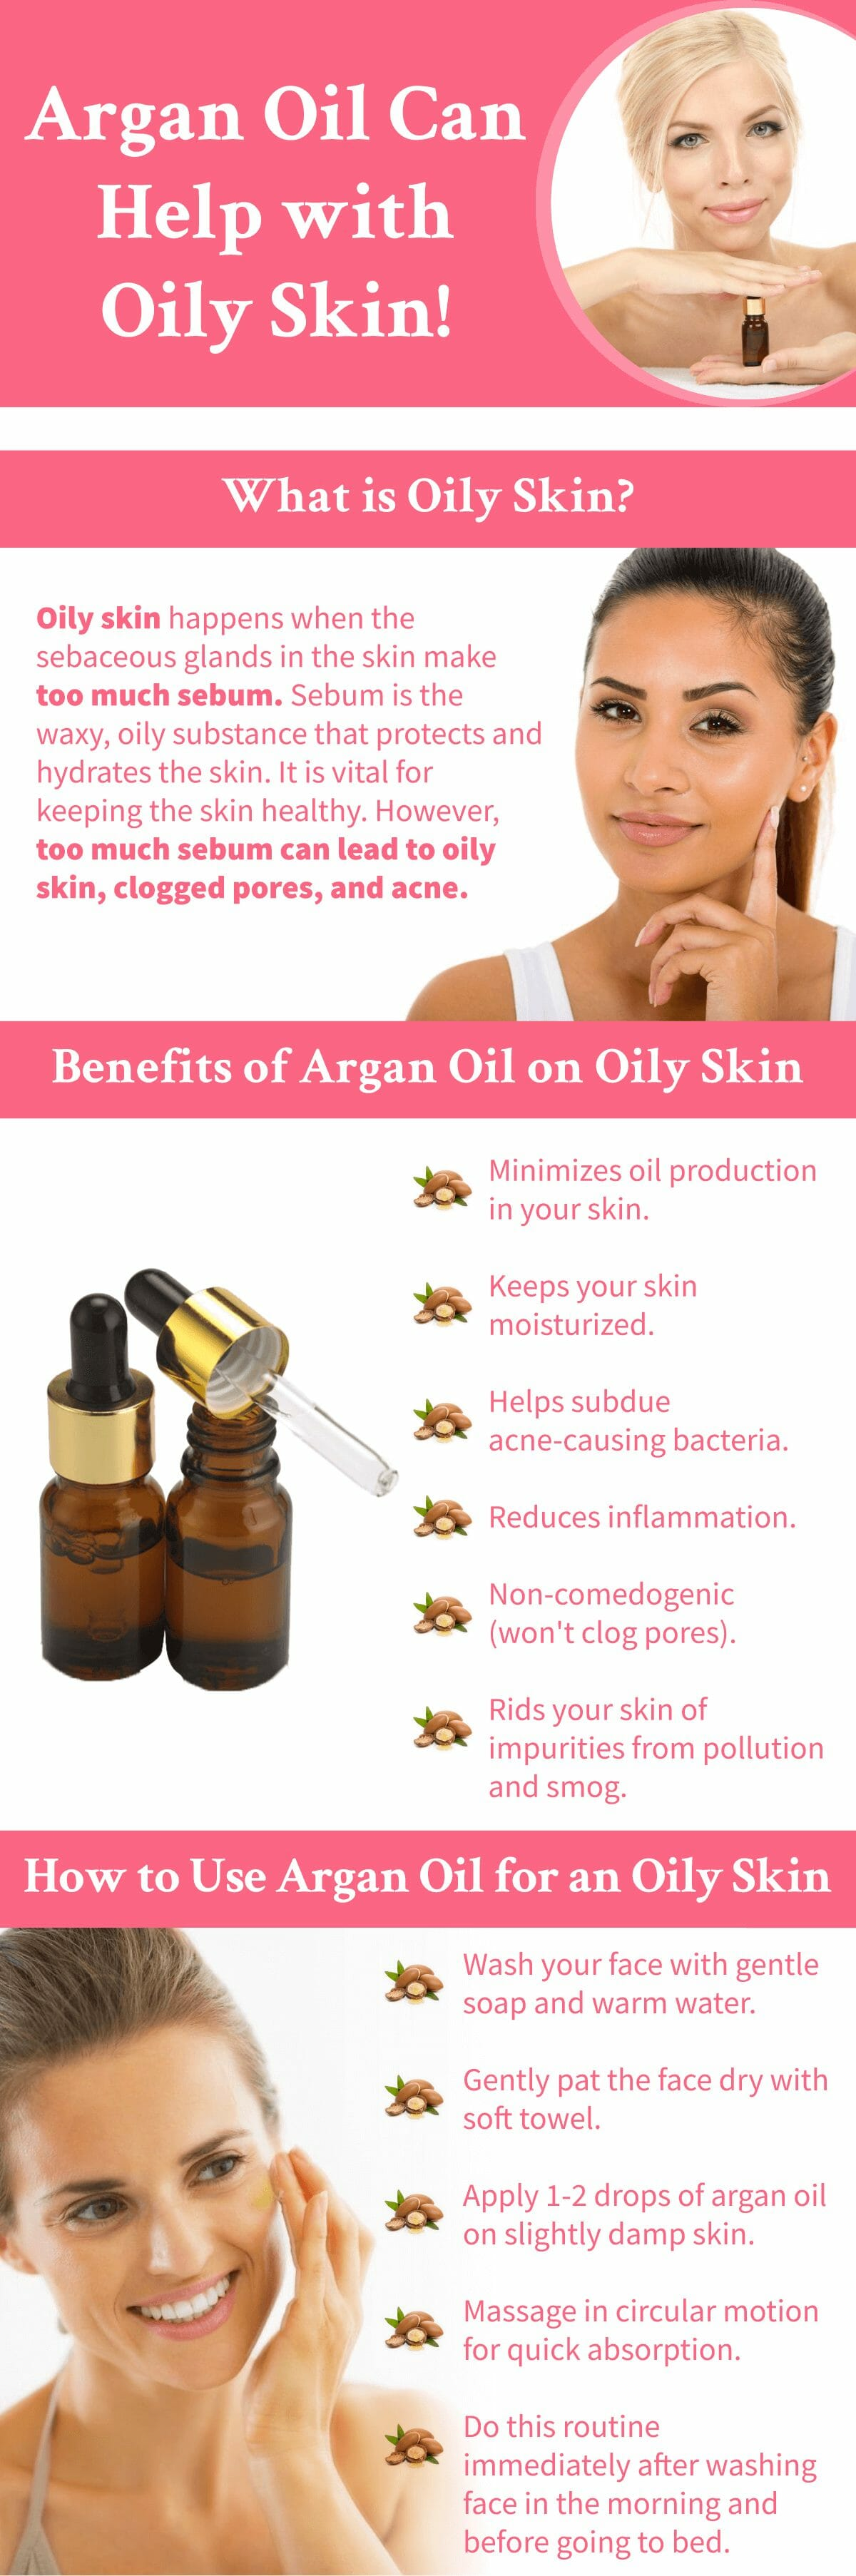 oily-skin-infographic-1